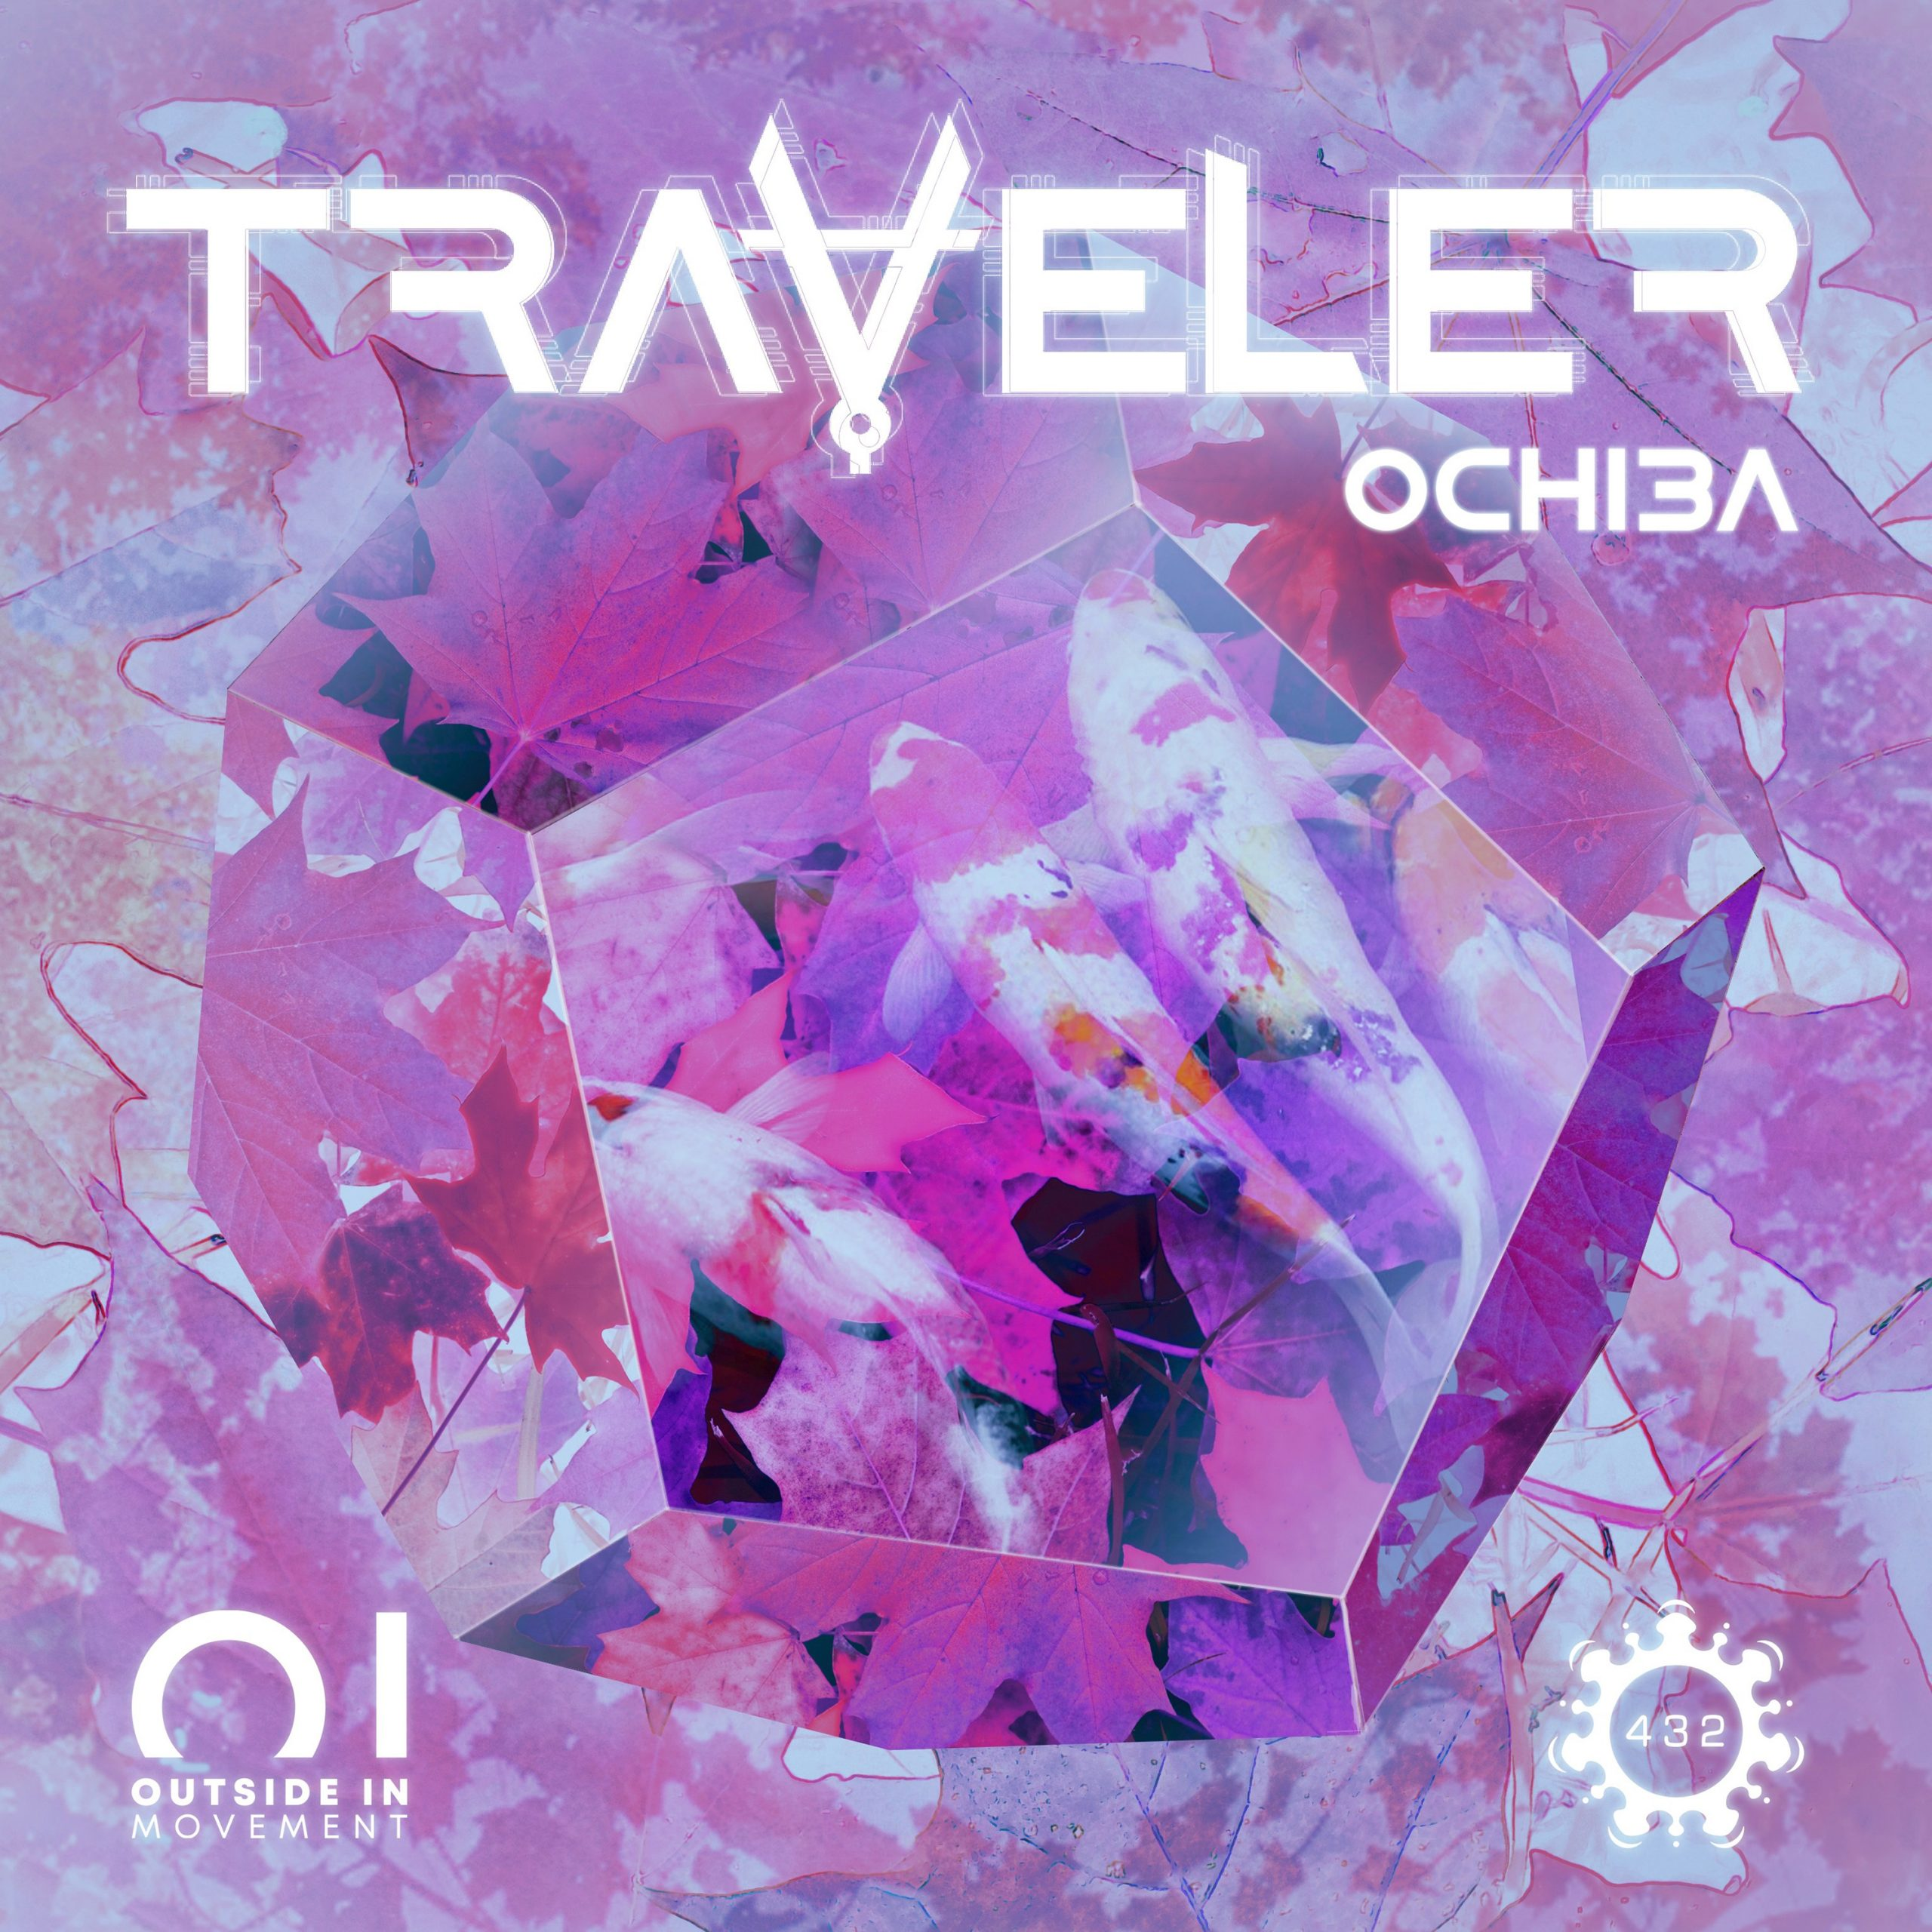 Traveler - Ochiba (Original Mix)